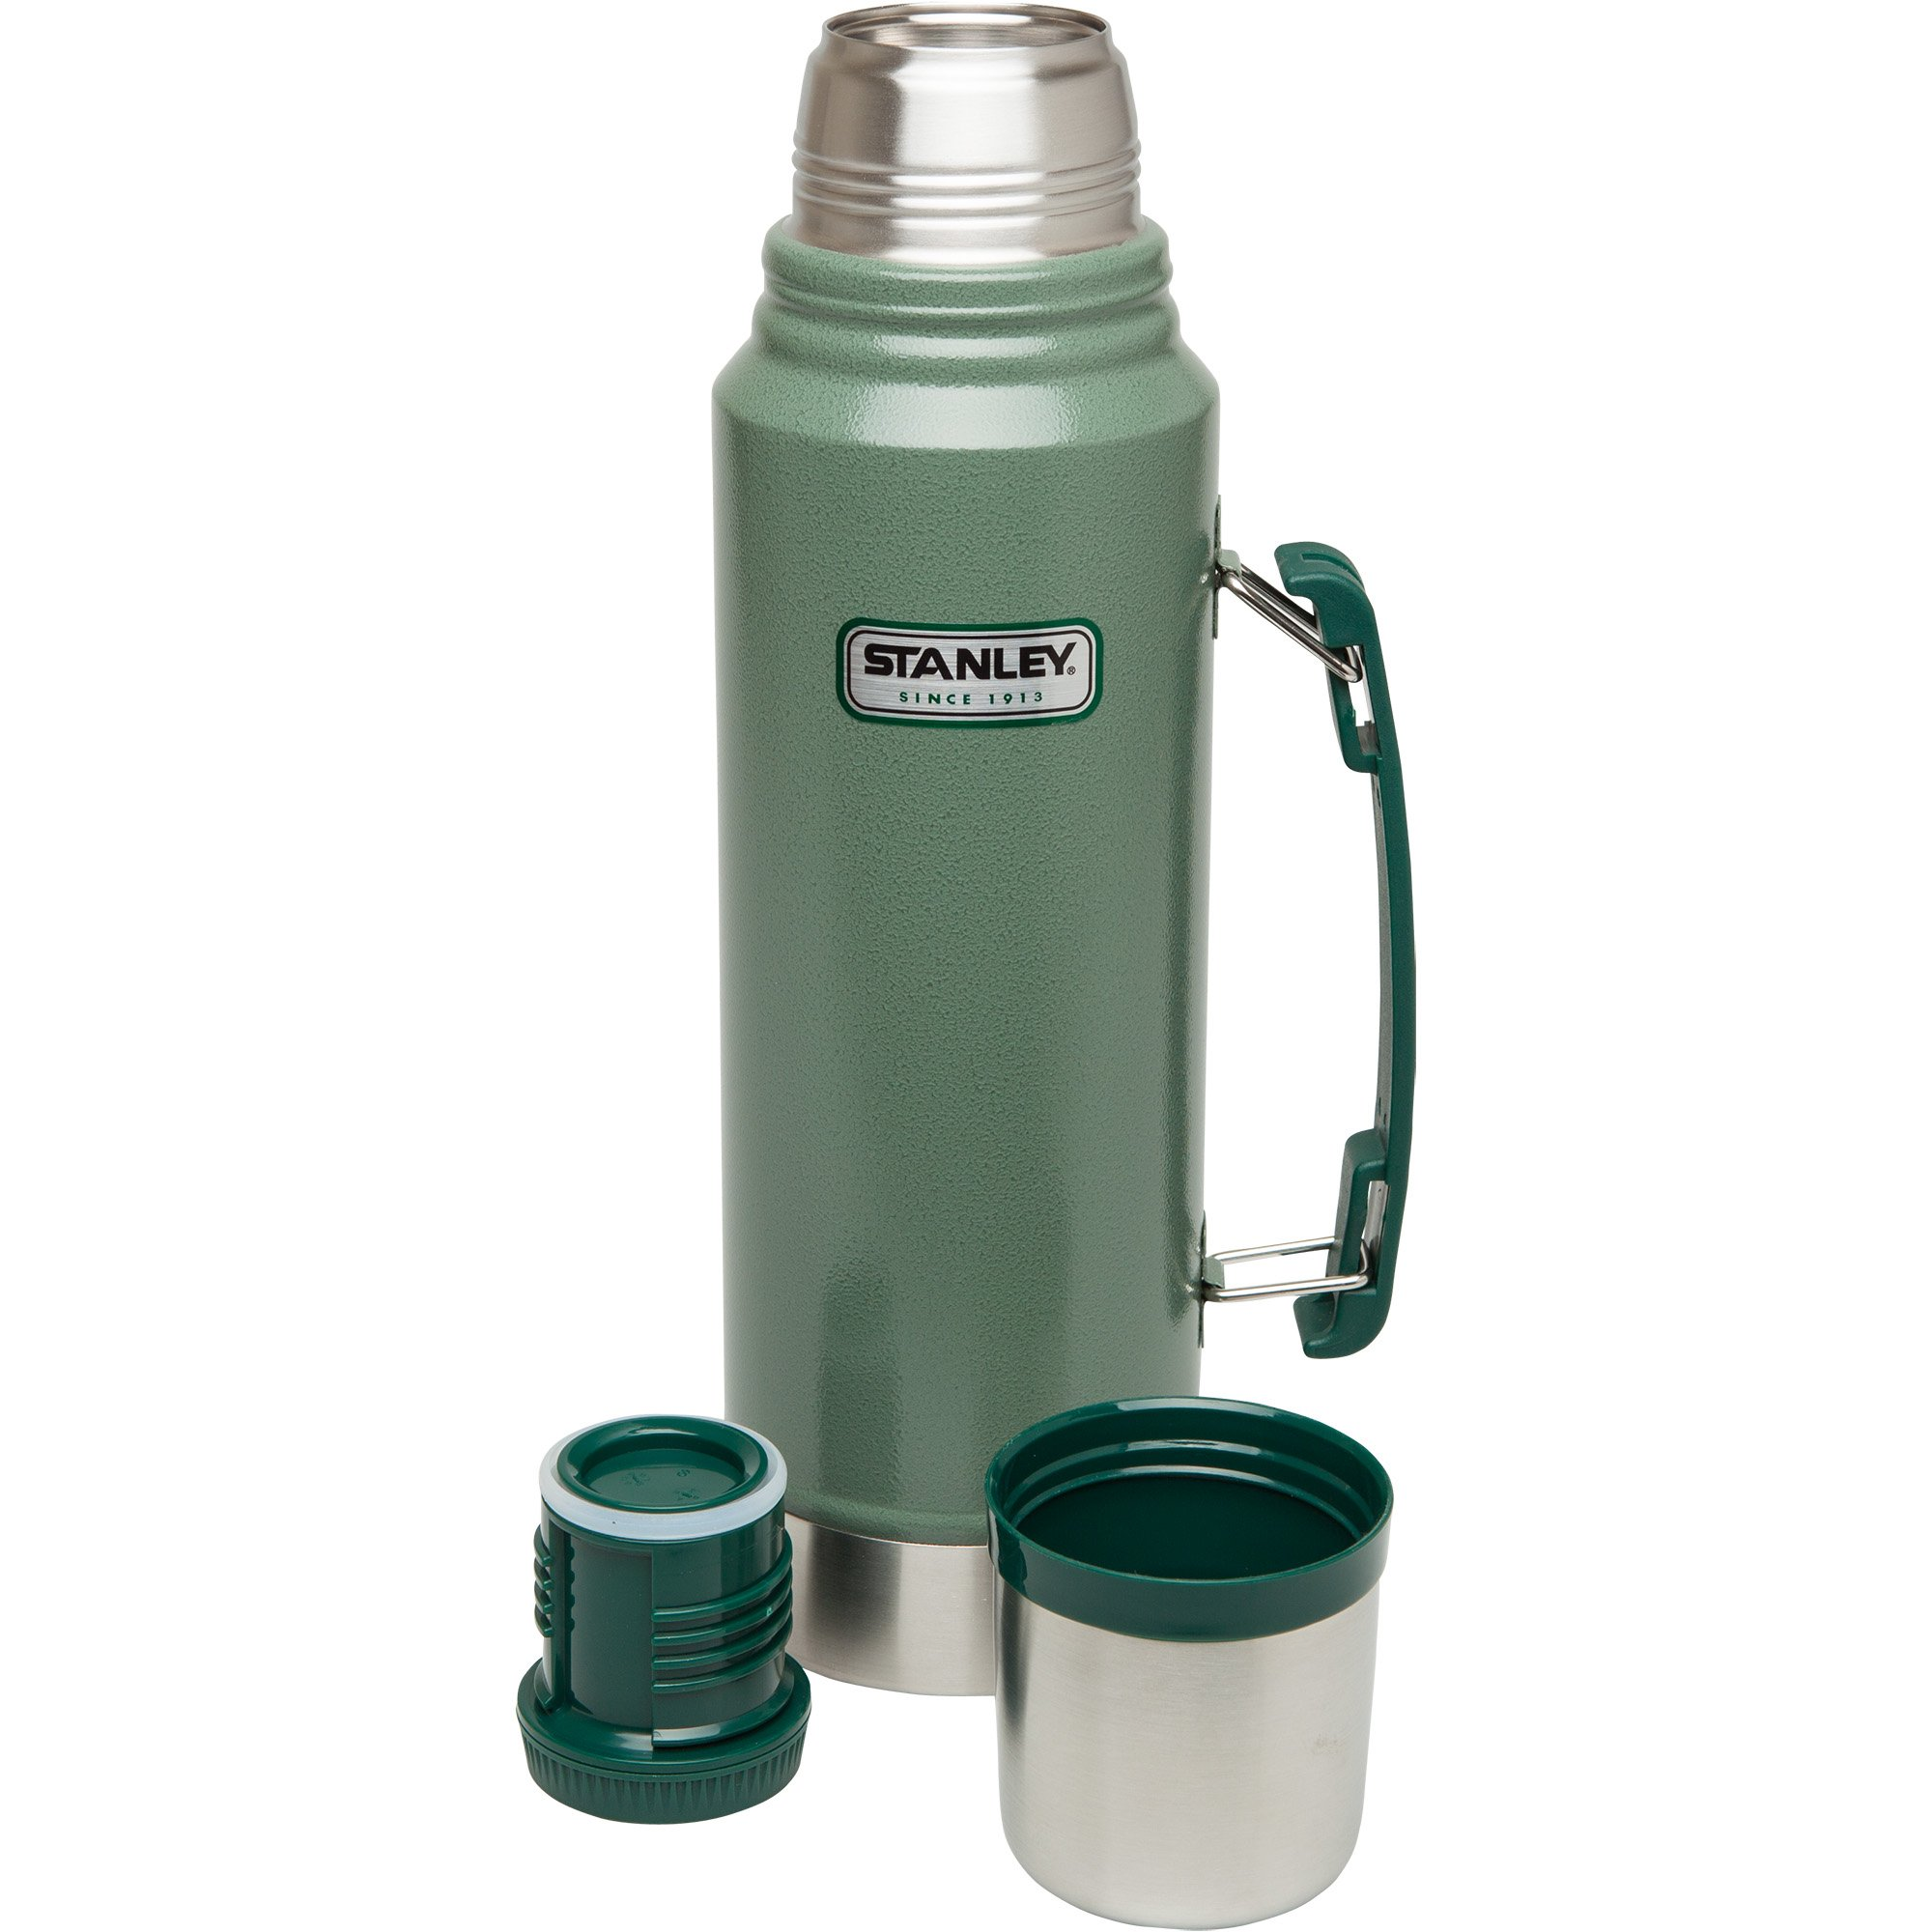 Stanley 7QT Heritage Cooler with Classic 1.1QT Vacuum Bottle by Stanley (Image #4)